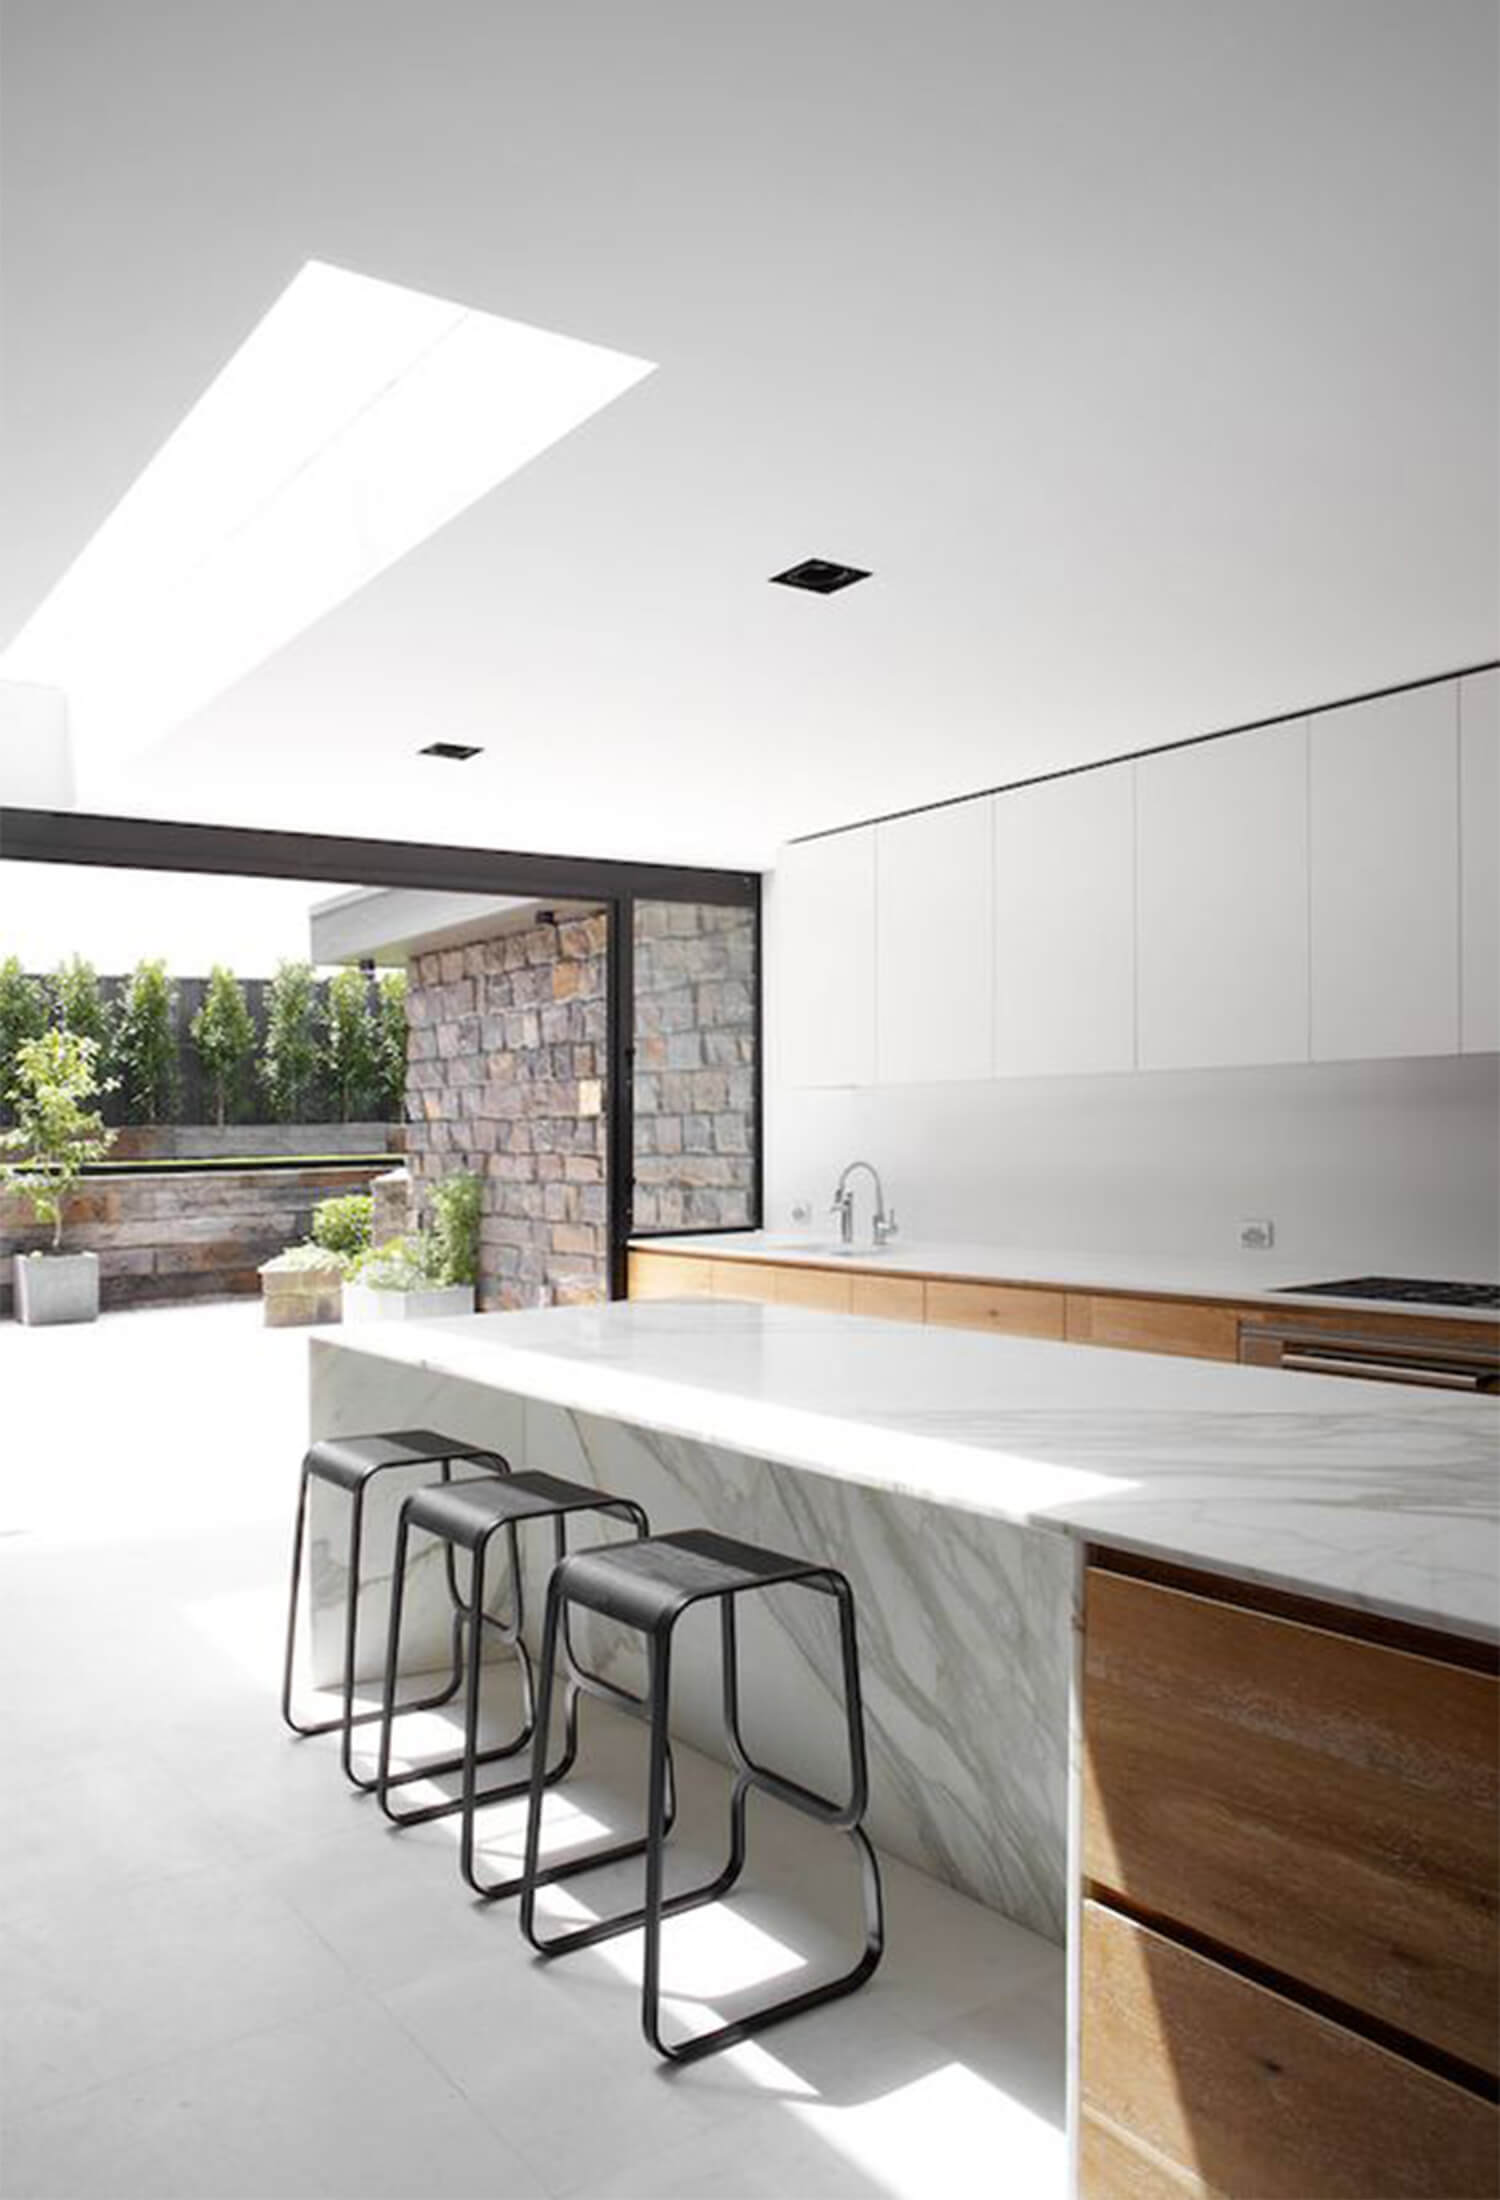 est living timber kitchens dale house robson rak